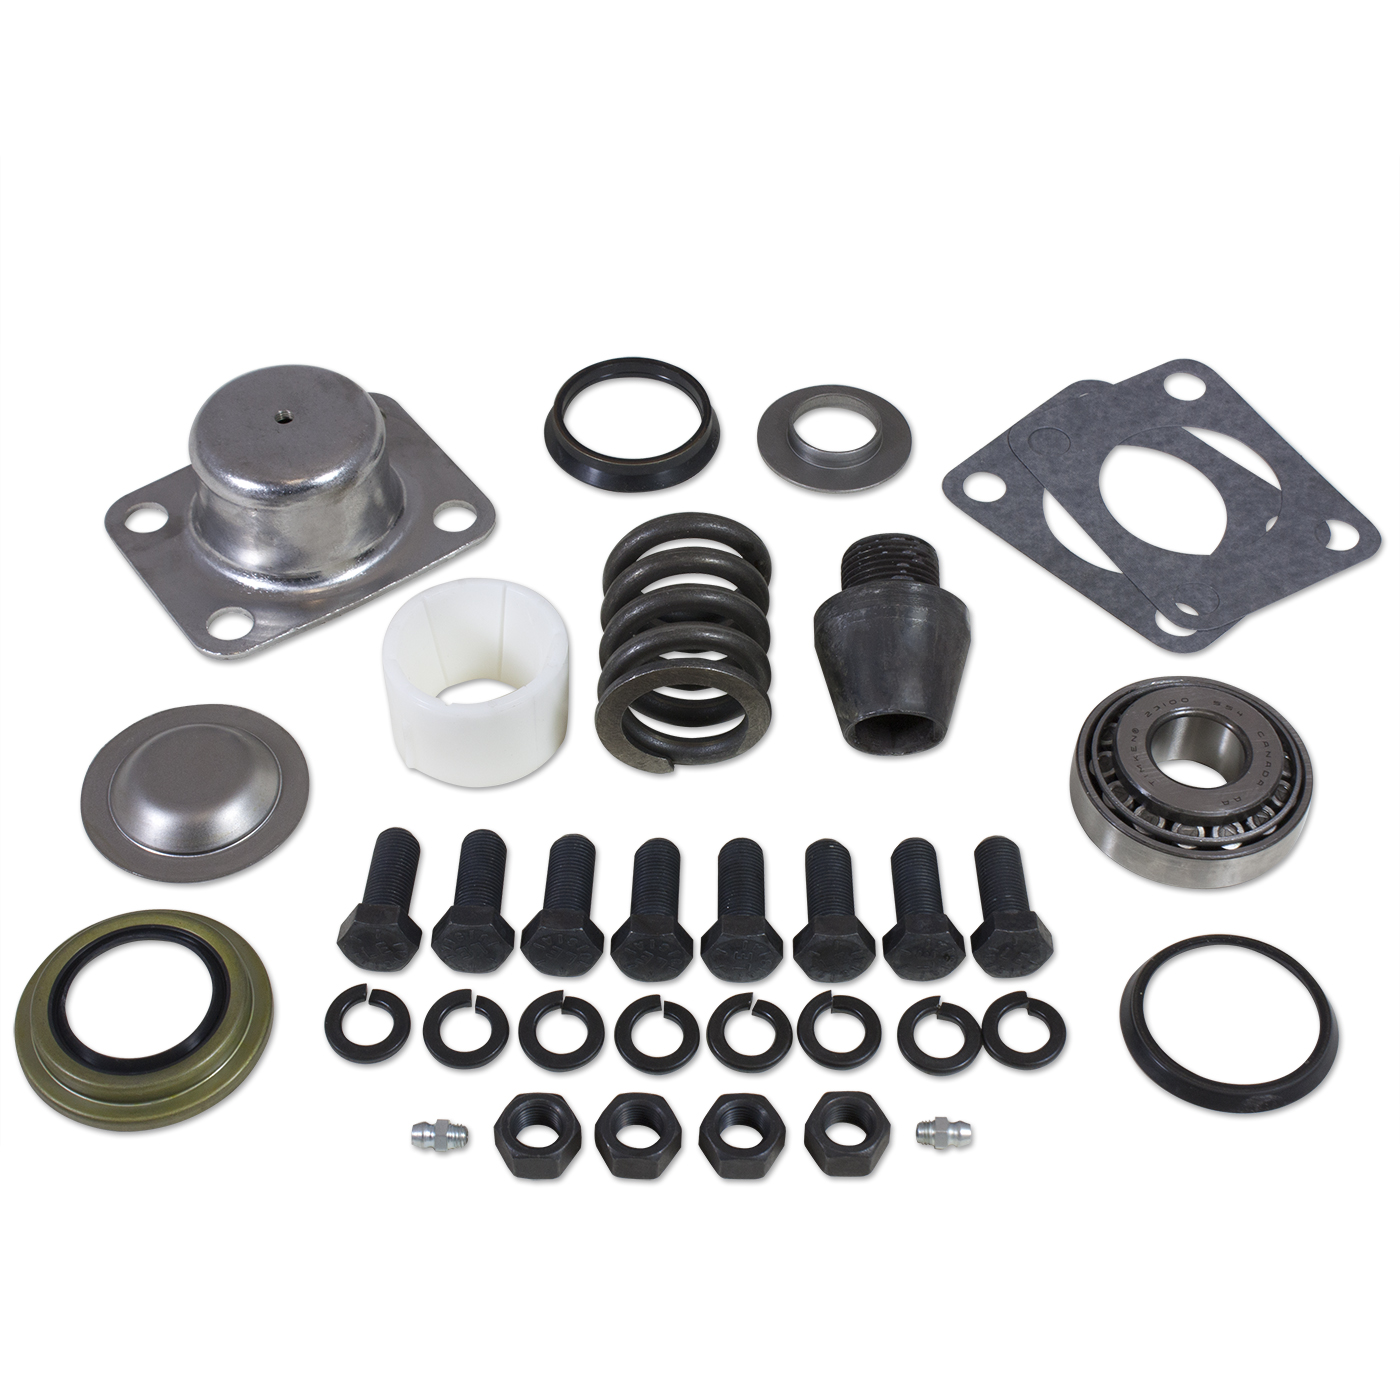 YP KP-001 - Replacement king-pin kit for Dana 60(1) side (pin, bushing, seals, bearings, spring, cap).